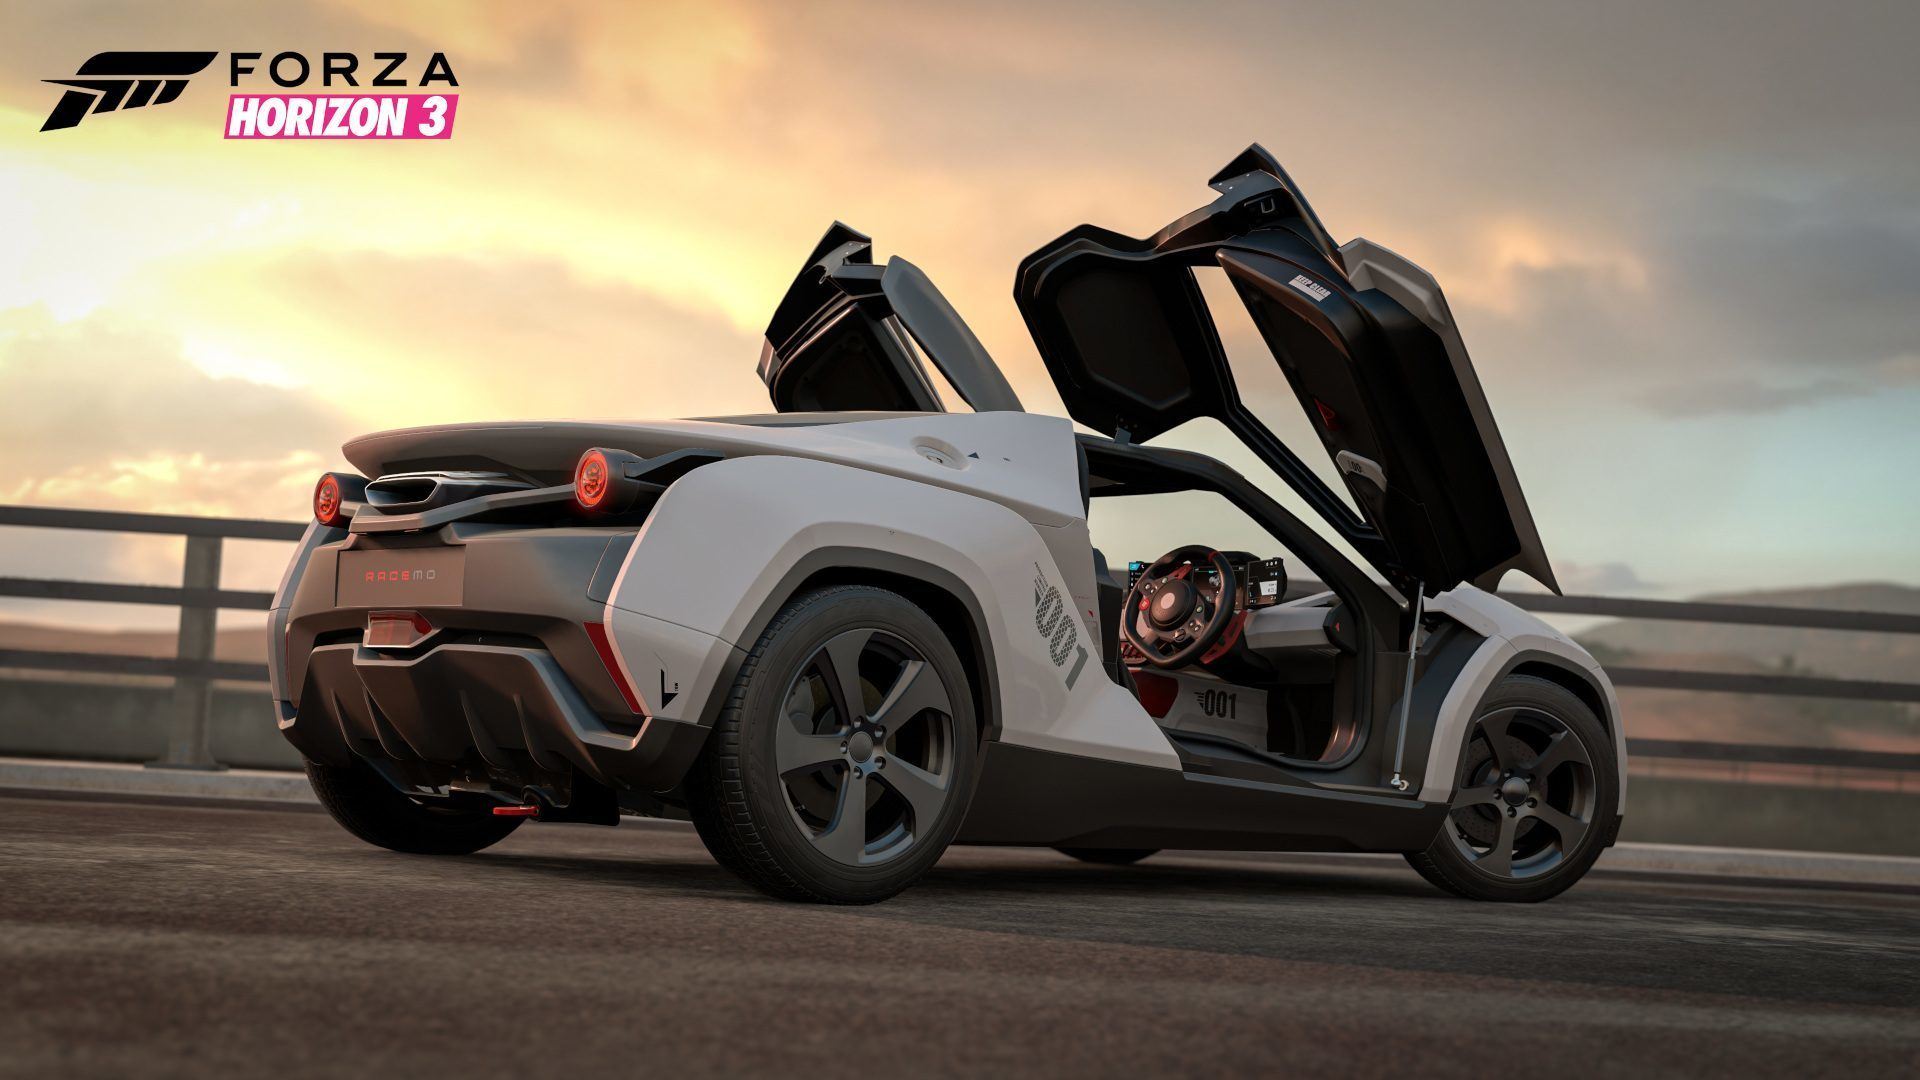 Tamo Racemo India S Newest Sports Car Coming To Forza